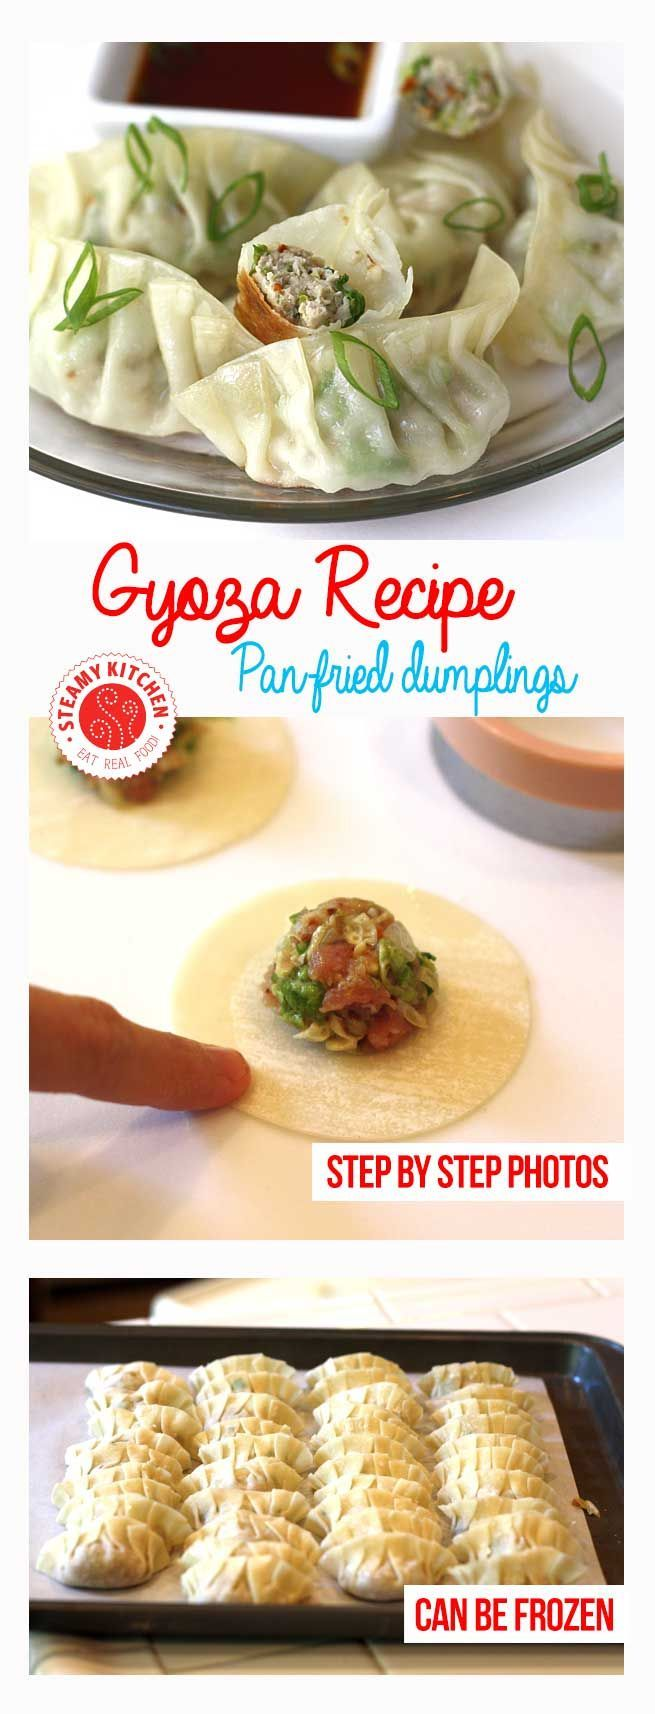 Gyoza Recipe (Japanese Pan-Fried dumplings) with step by step photos ~ http://steamykitchen.com